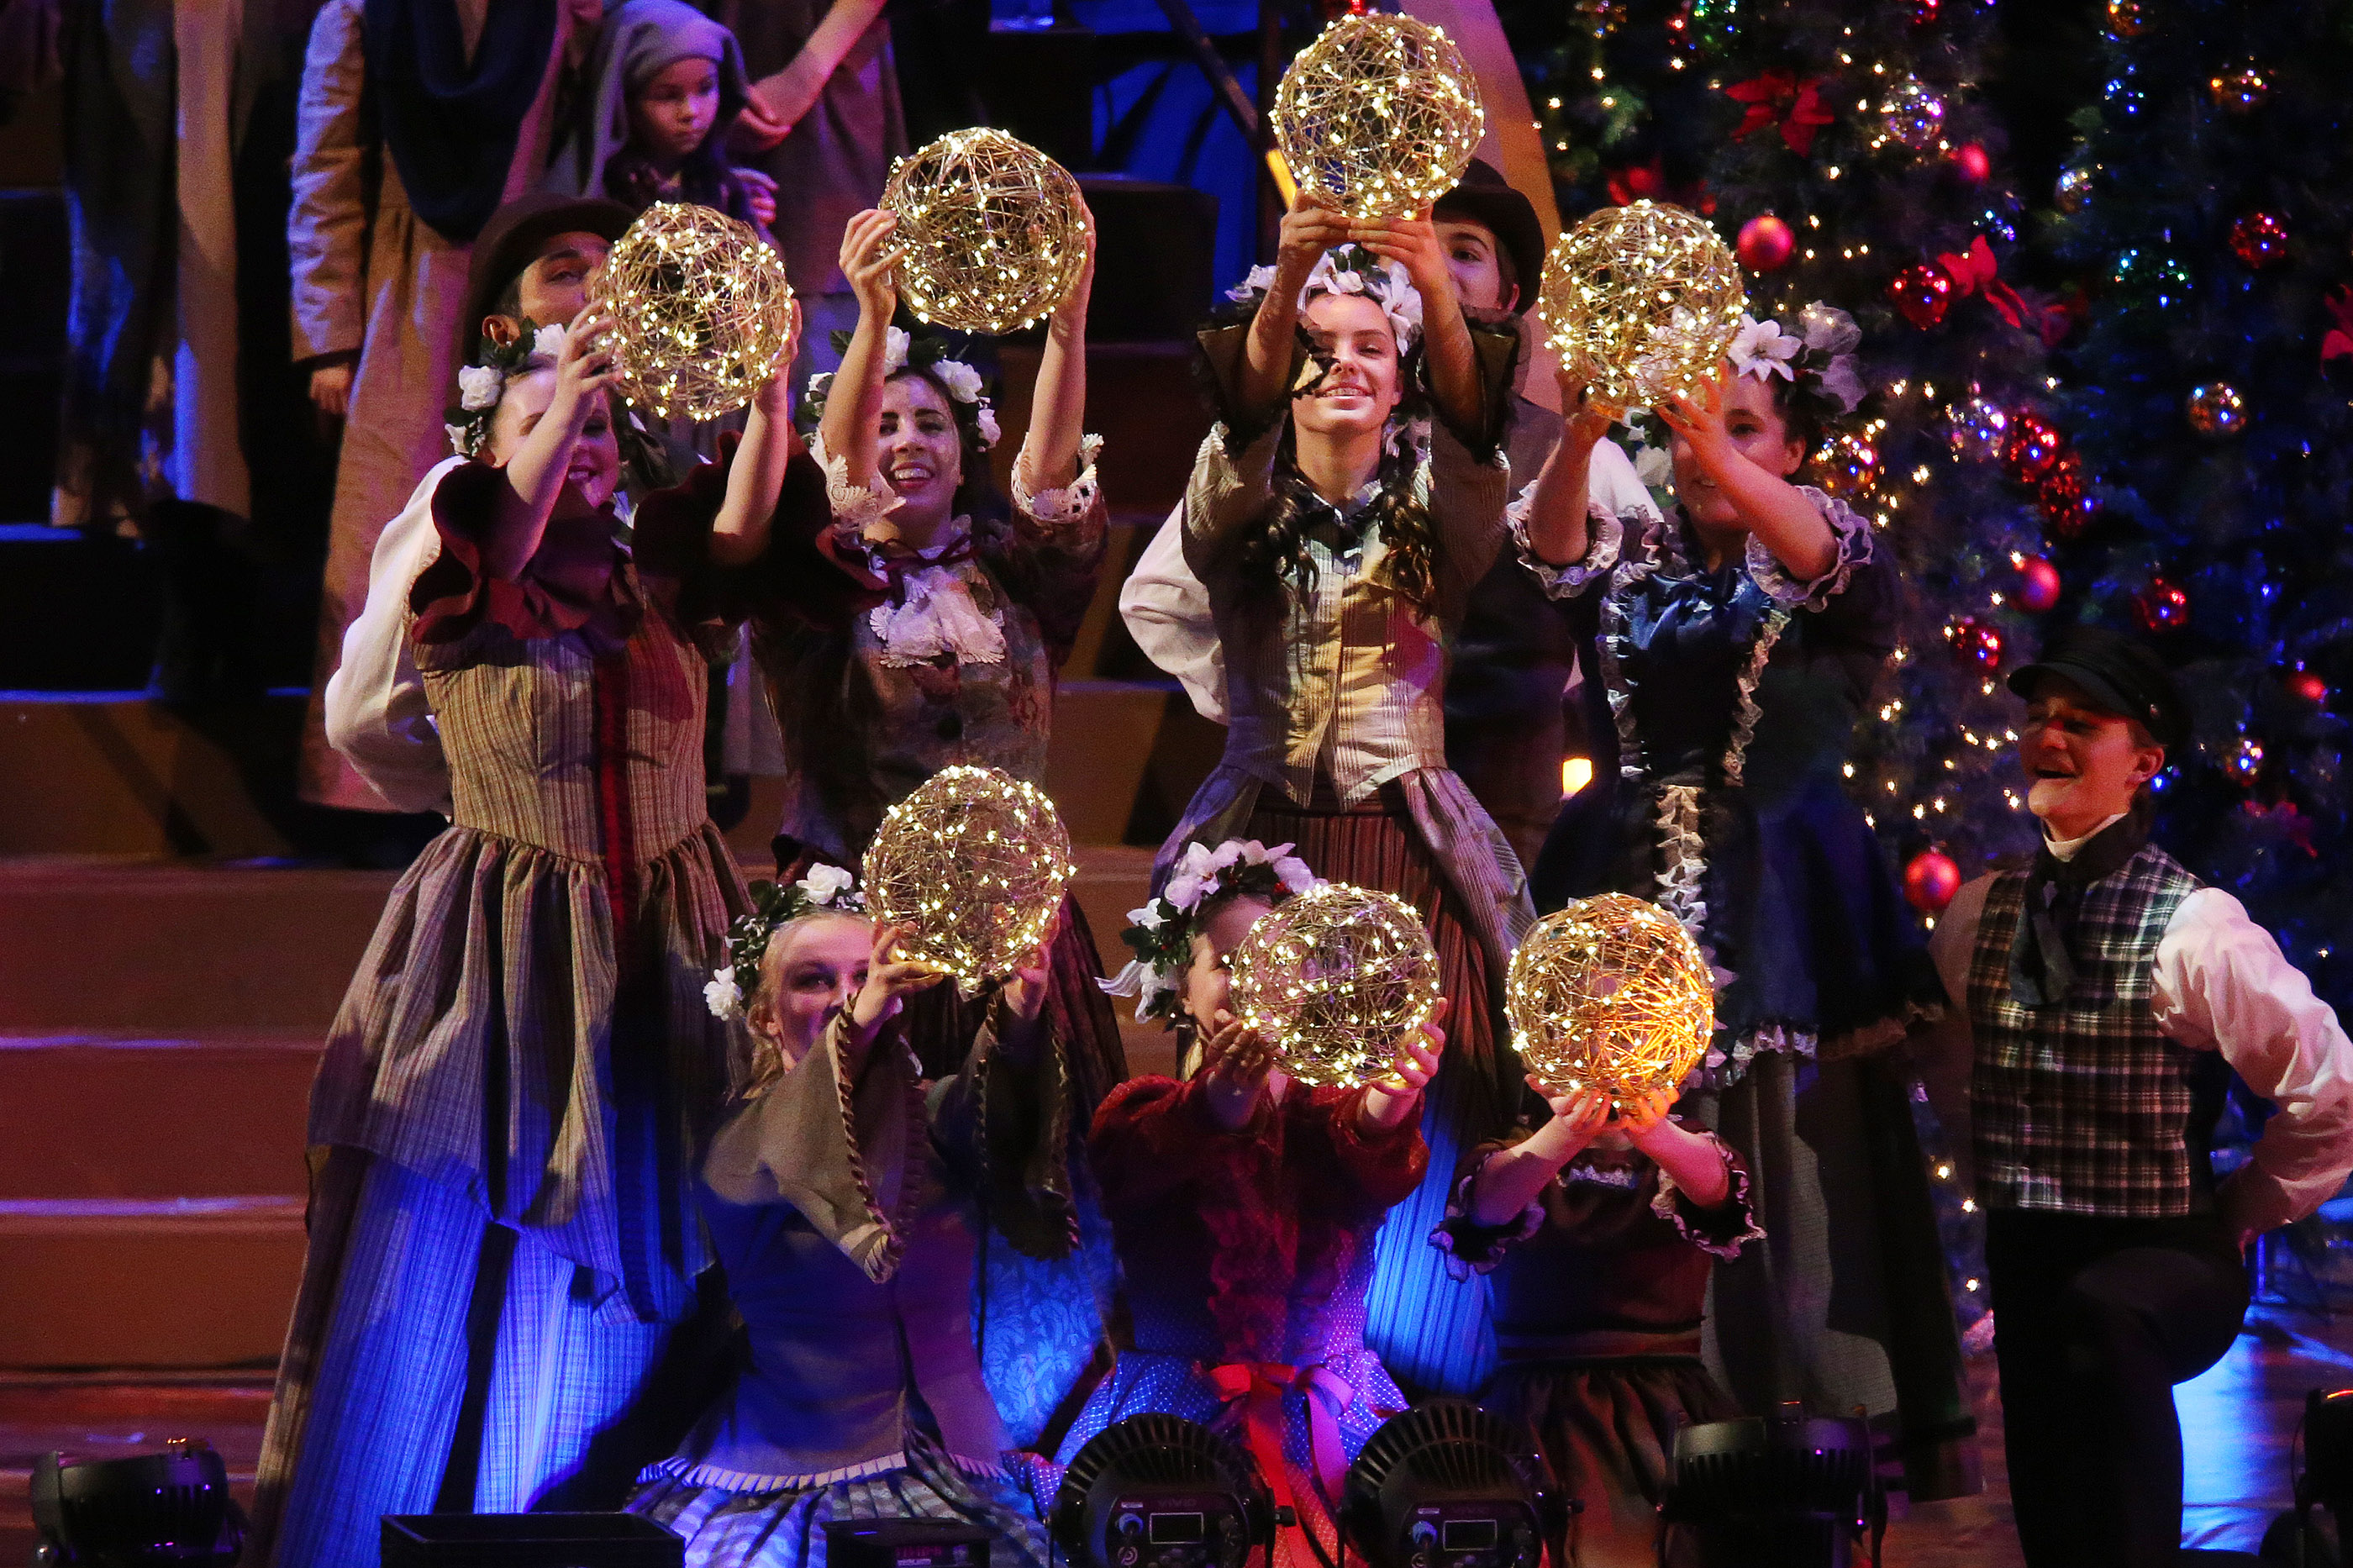 dancers perform during the mormon tabernacle choir christmas concert in salt lake city on thursday december 14 2017 photo by jeffrey d allred